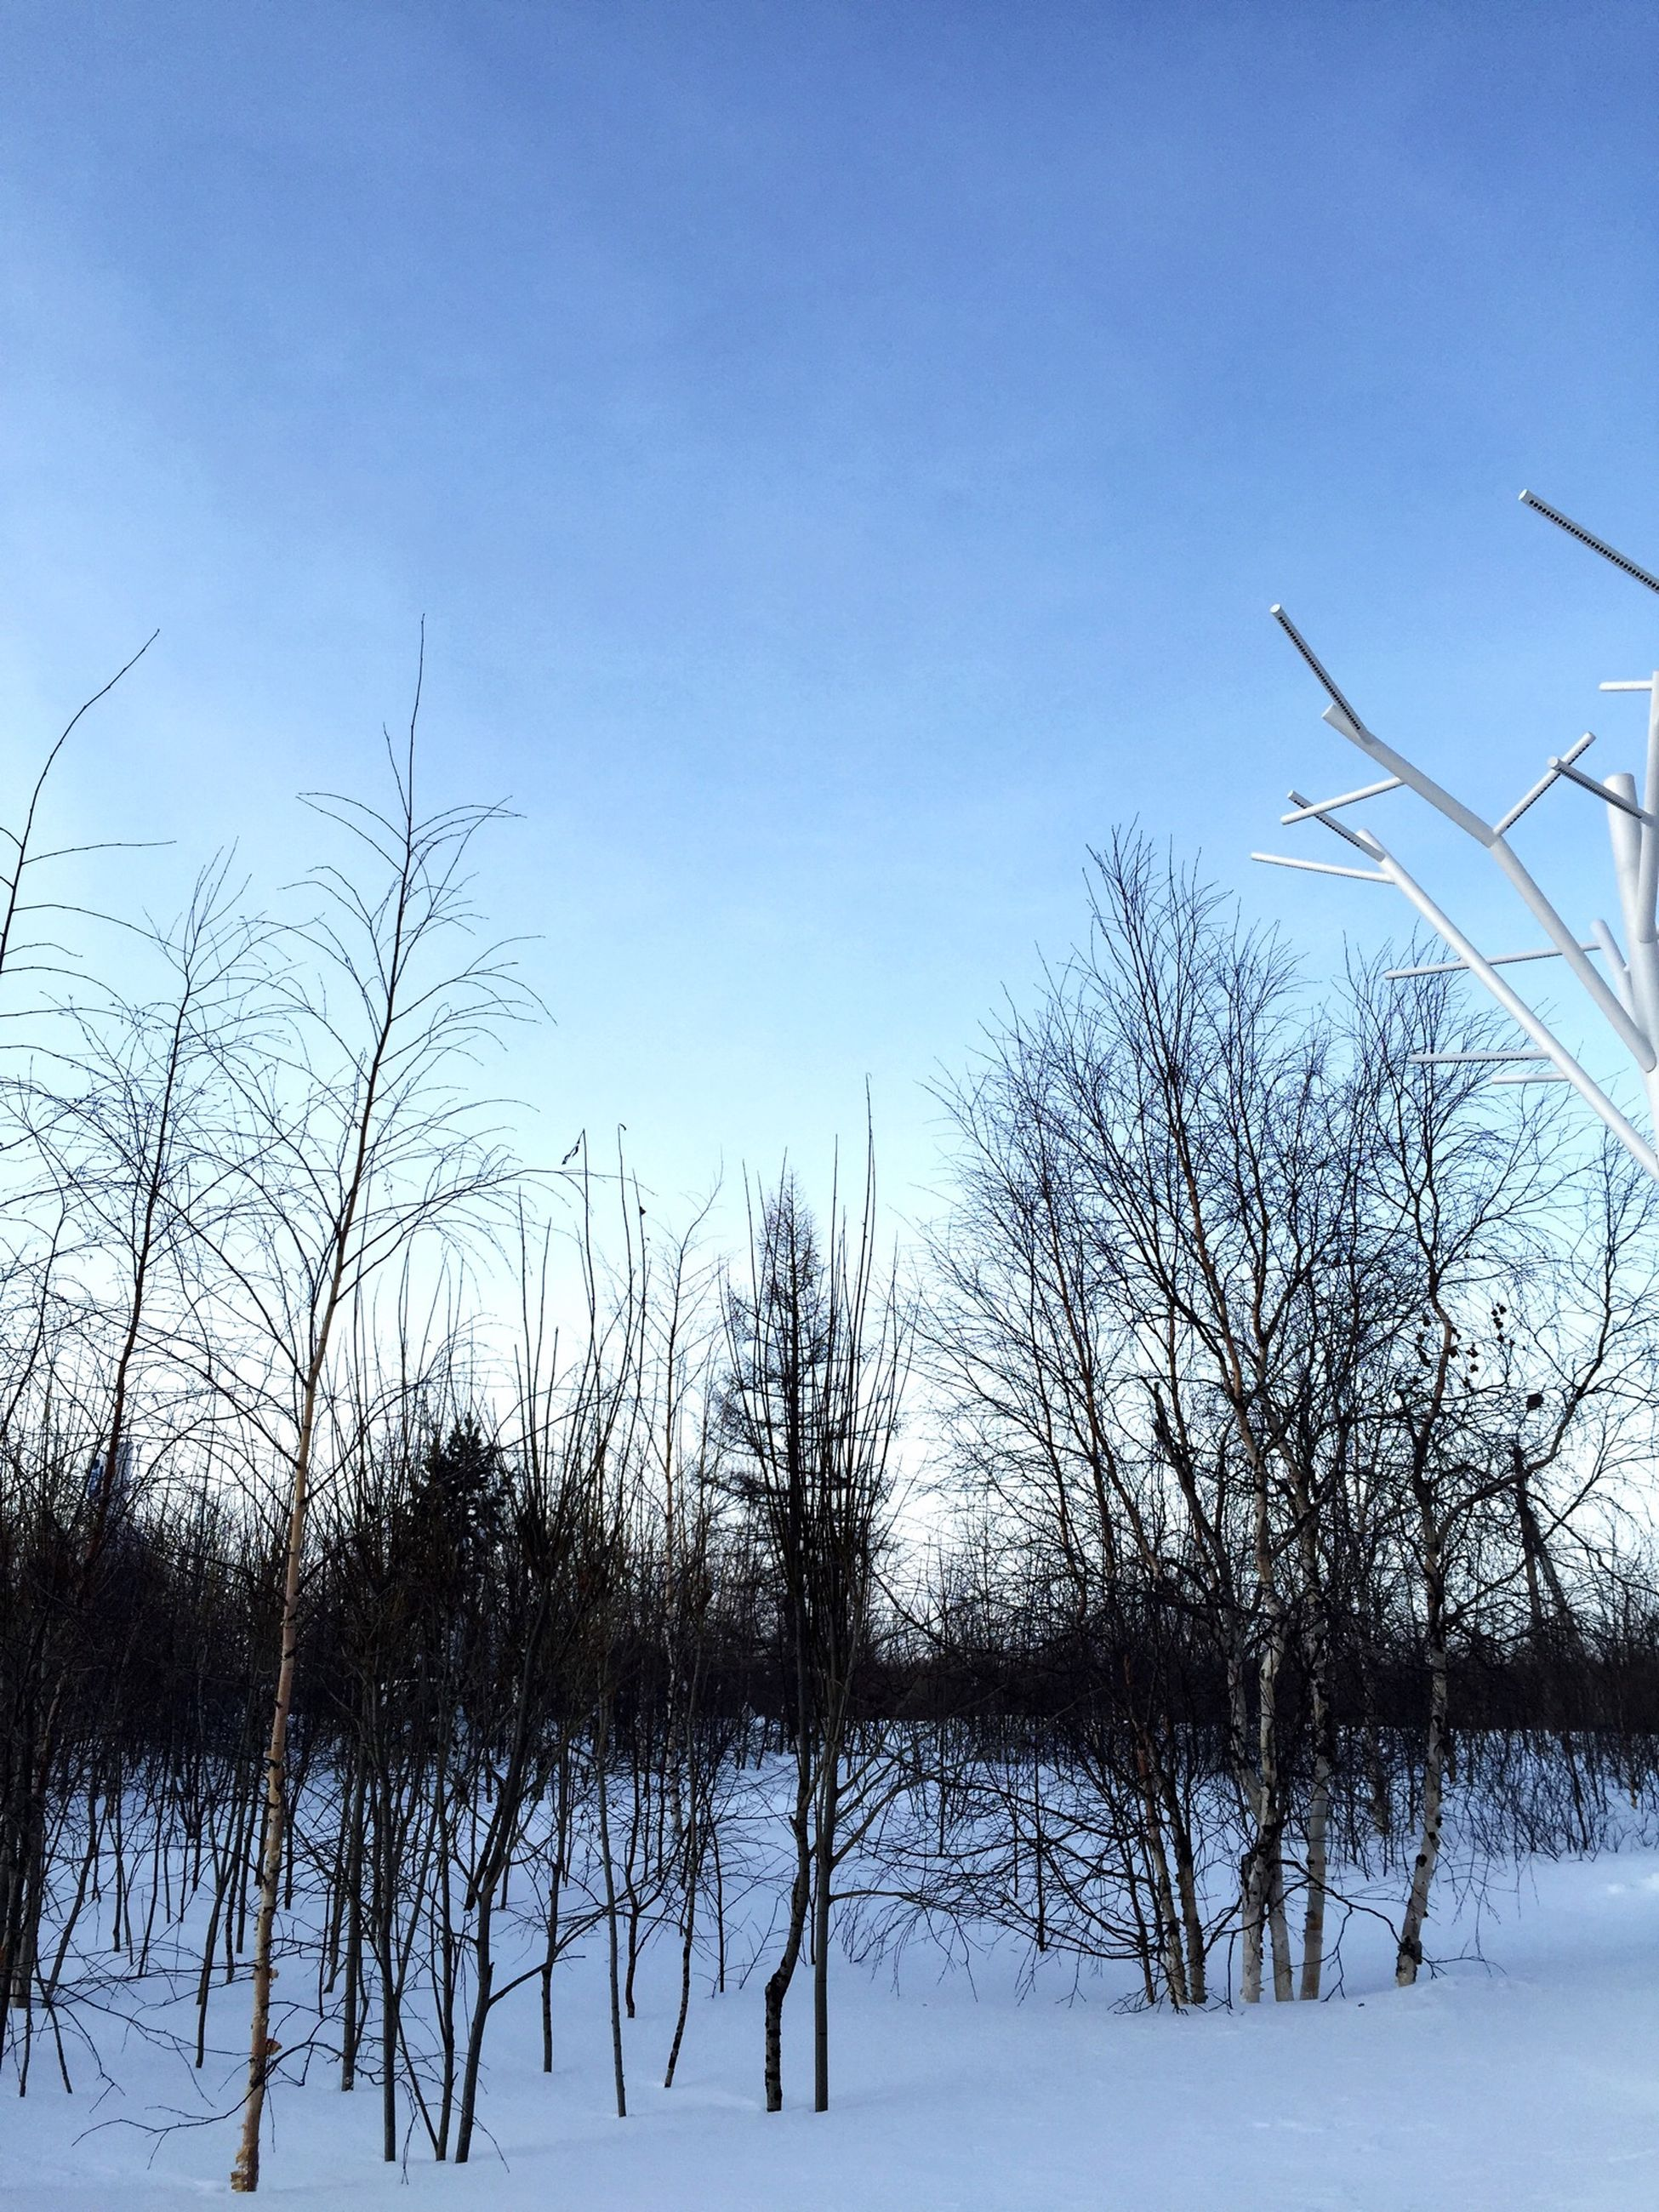 clear sky, winter, snow, cold temperature, tranquility, copy space, bare tree, tranquil scene, nature, blue, season, beauty in nature, tree, scenics, landscape, field, frozen, branch, outdoors, snow covered